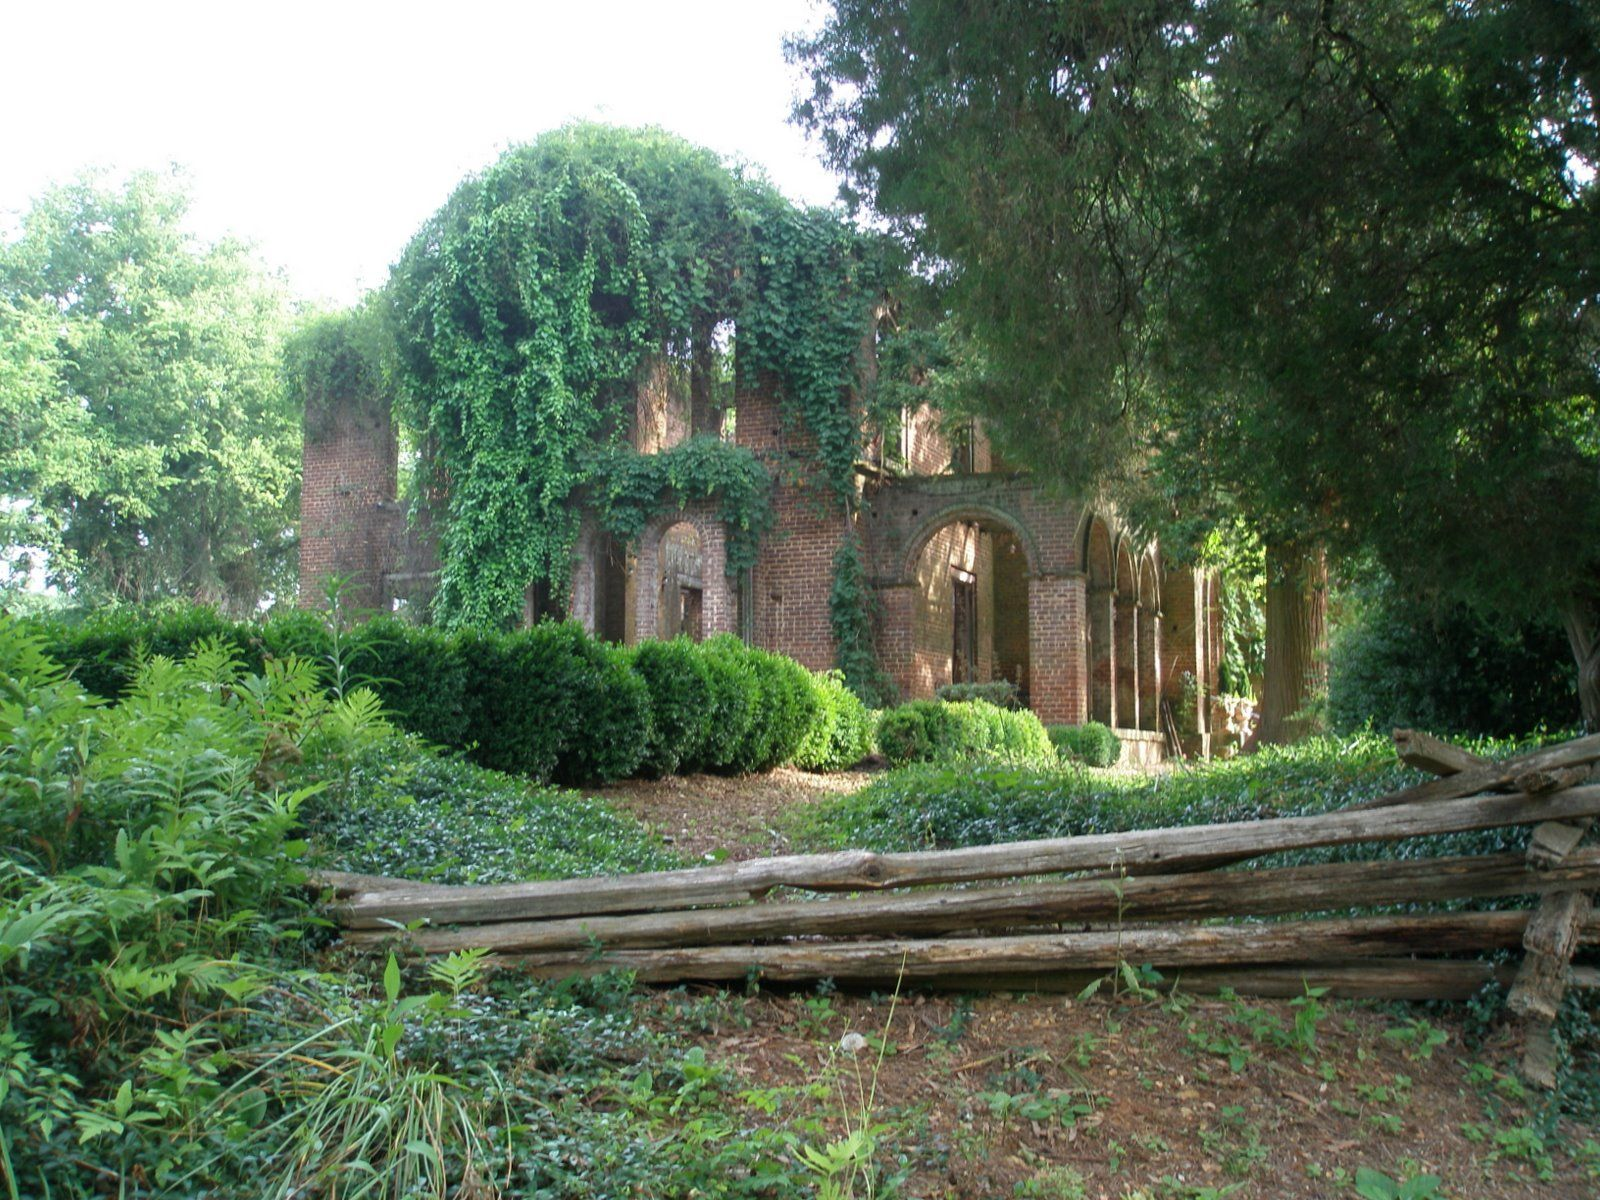 Barnsley Gardens. Found A Picture Of The Ruins! Really Beautiful In A Sad  Sort